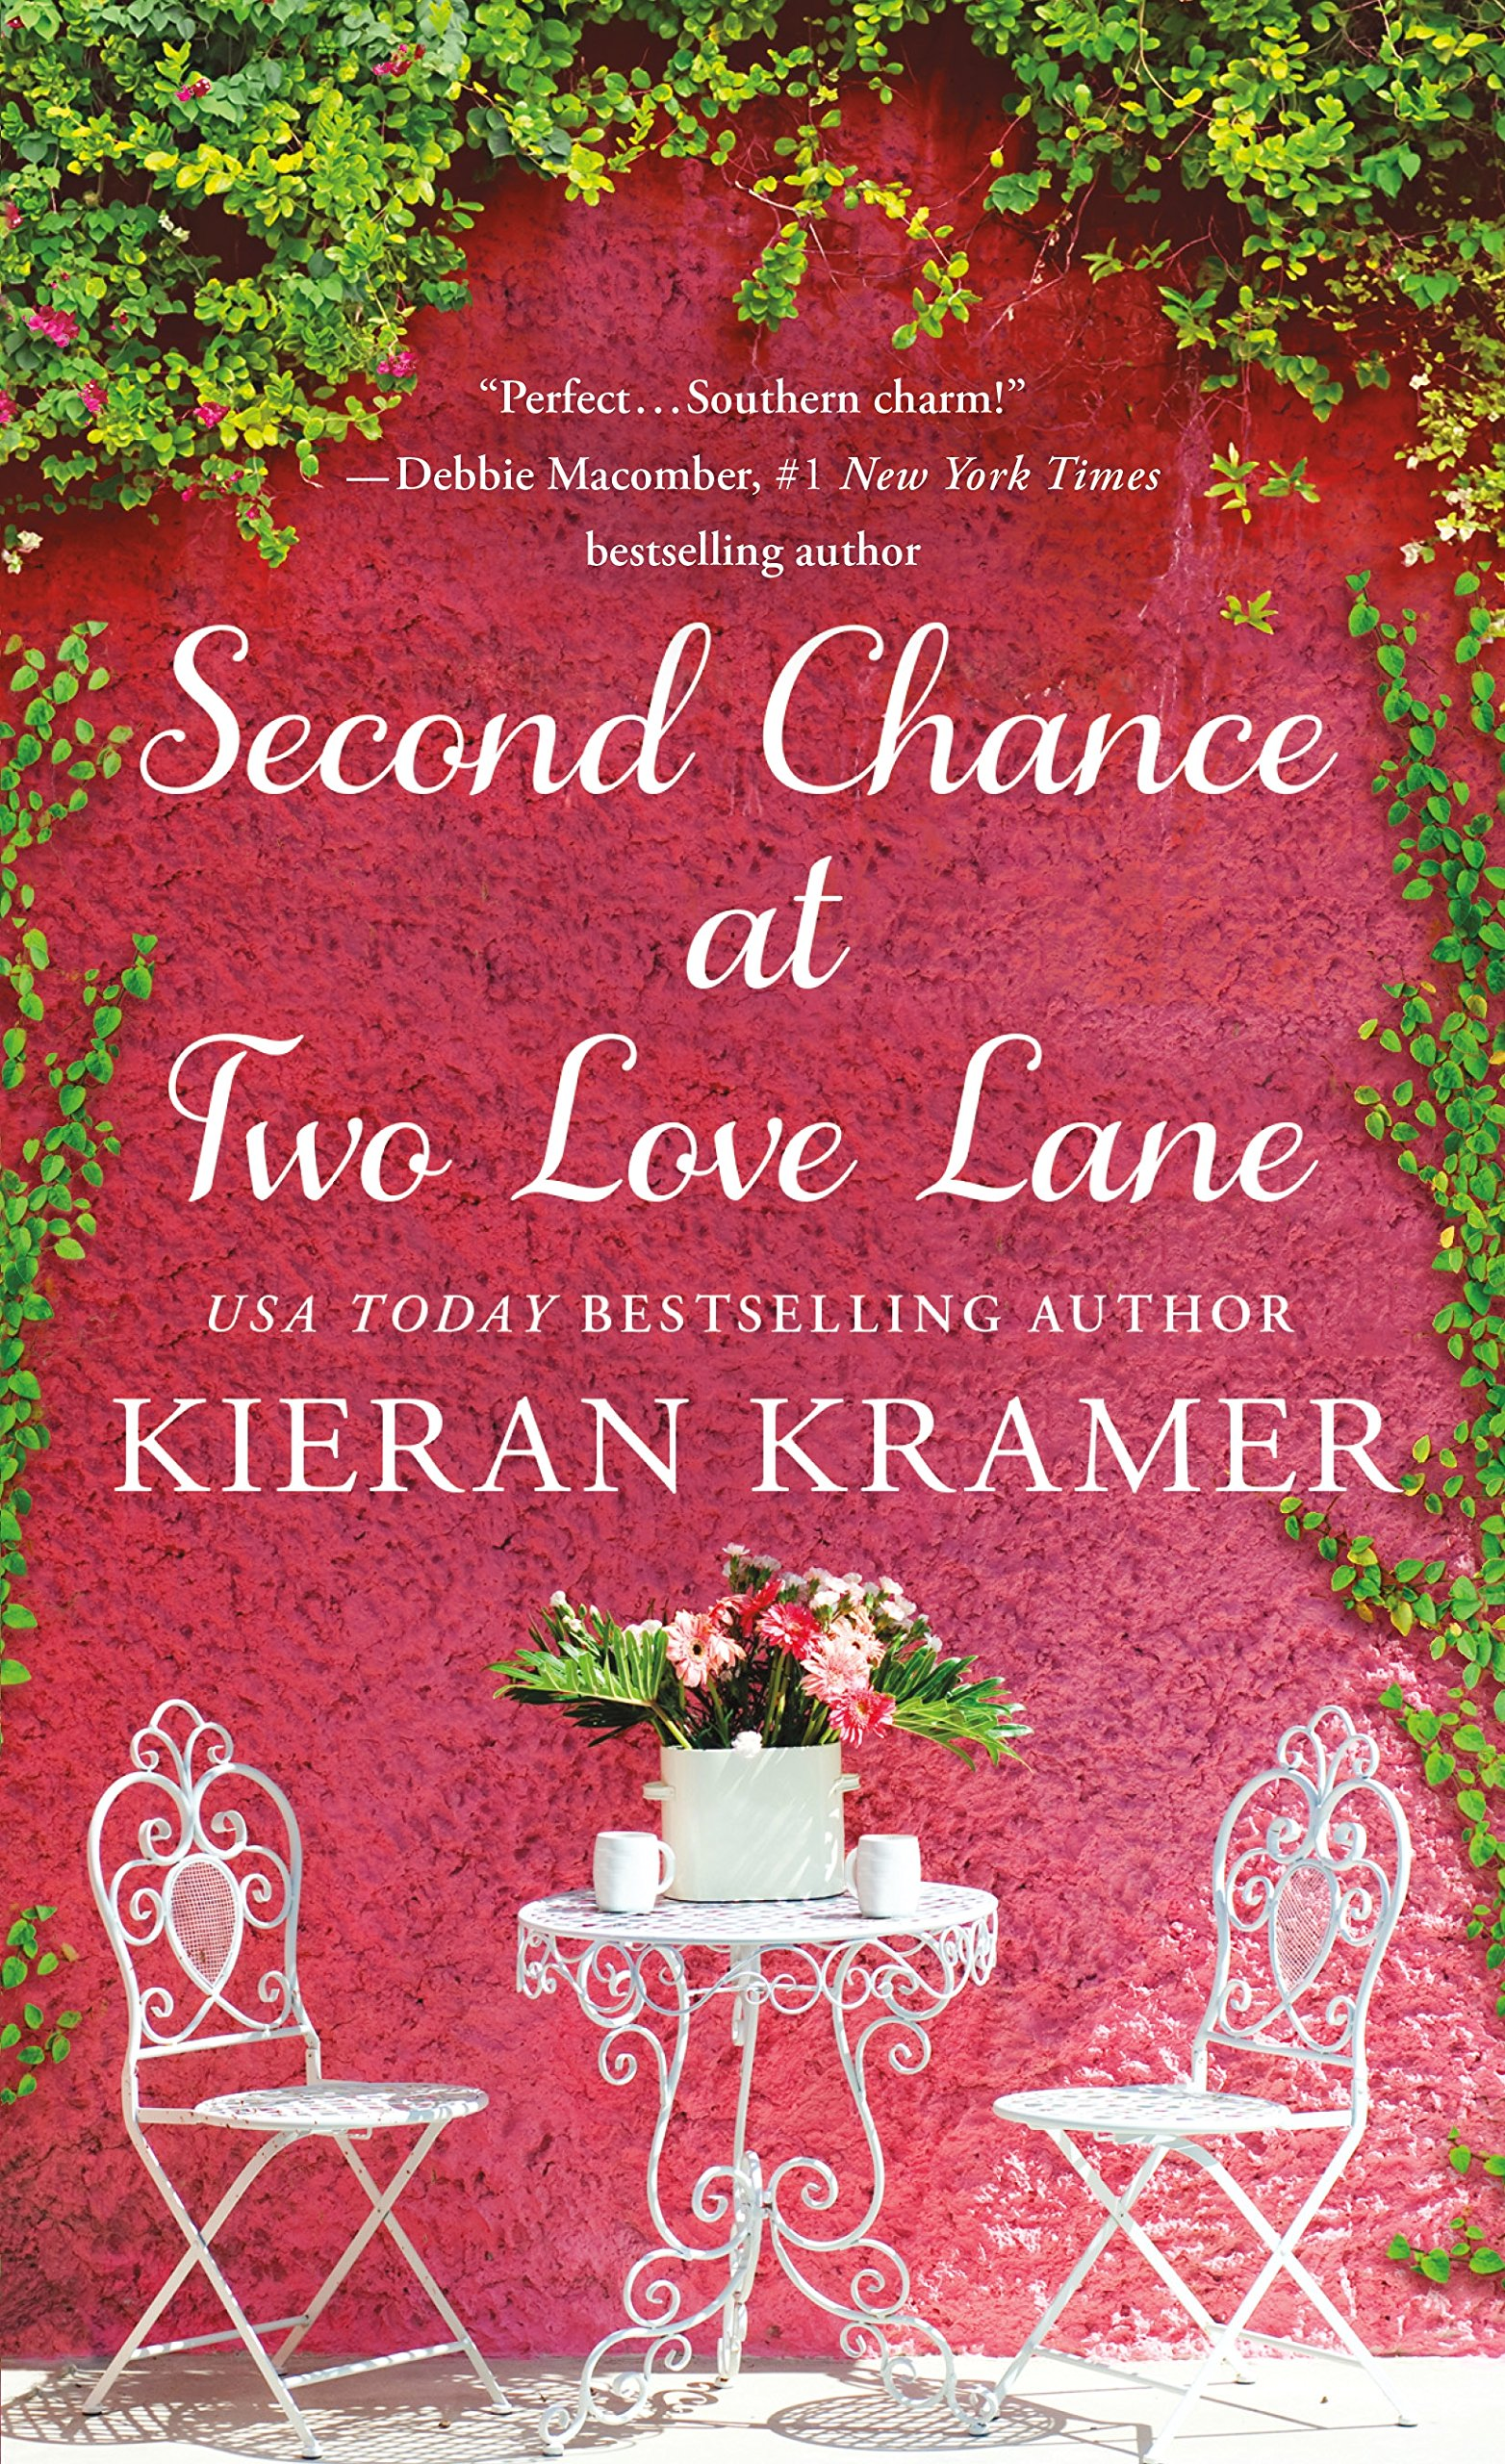 The Third Time was NOT the Charm | Second Chance at Two Love Lane by Kieran Kramer